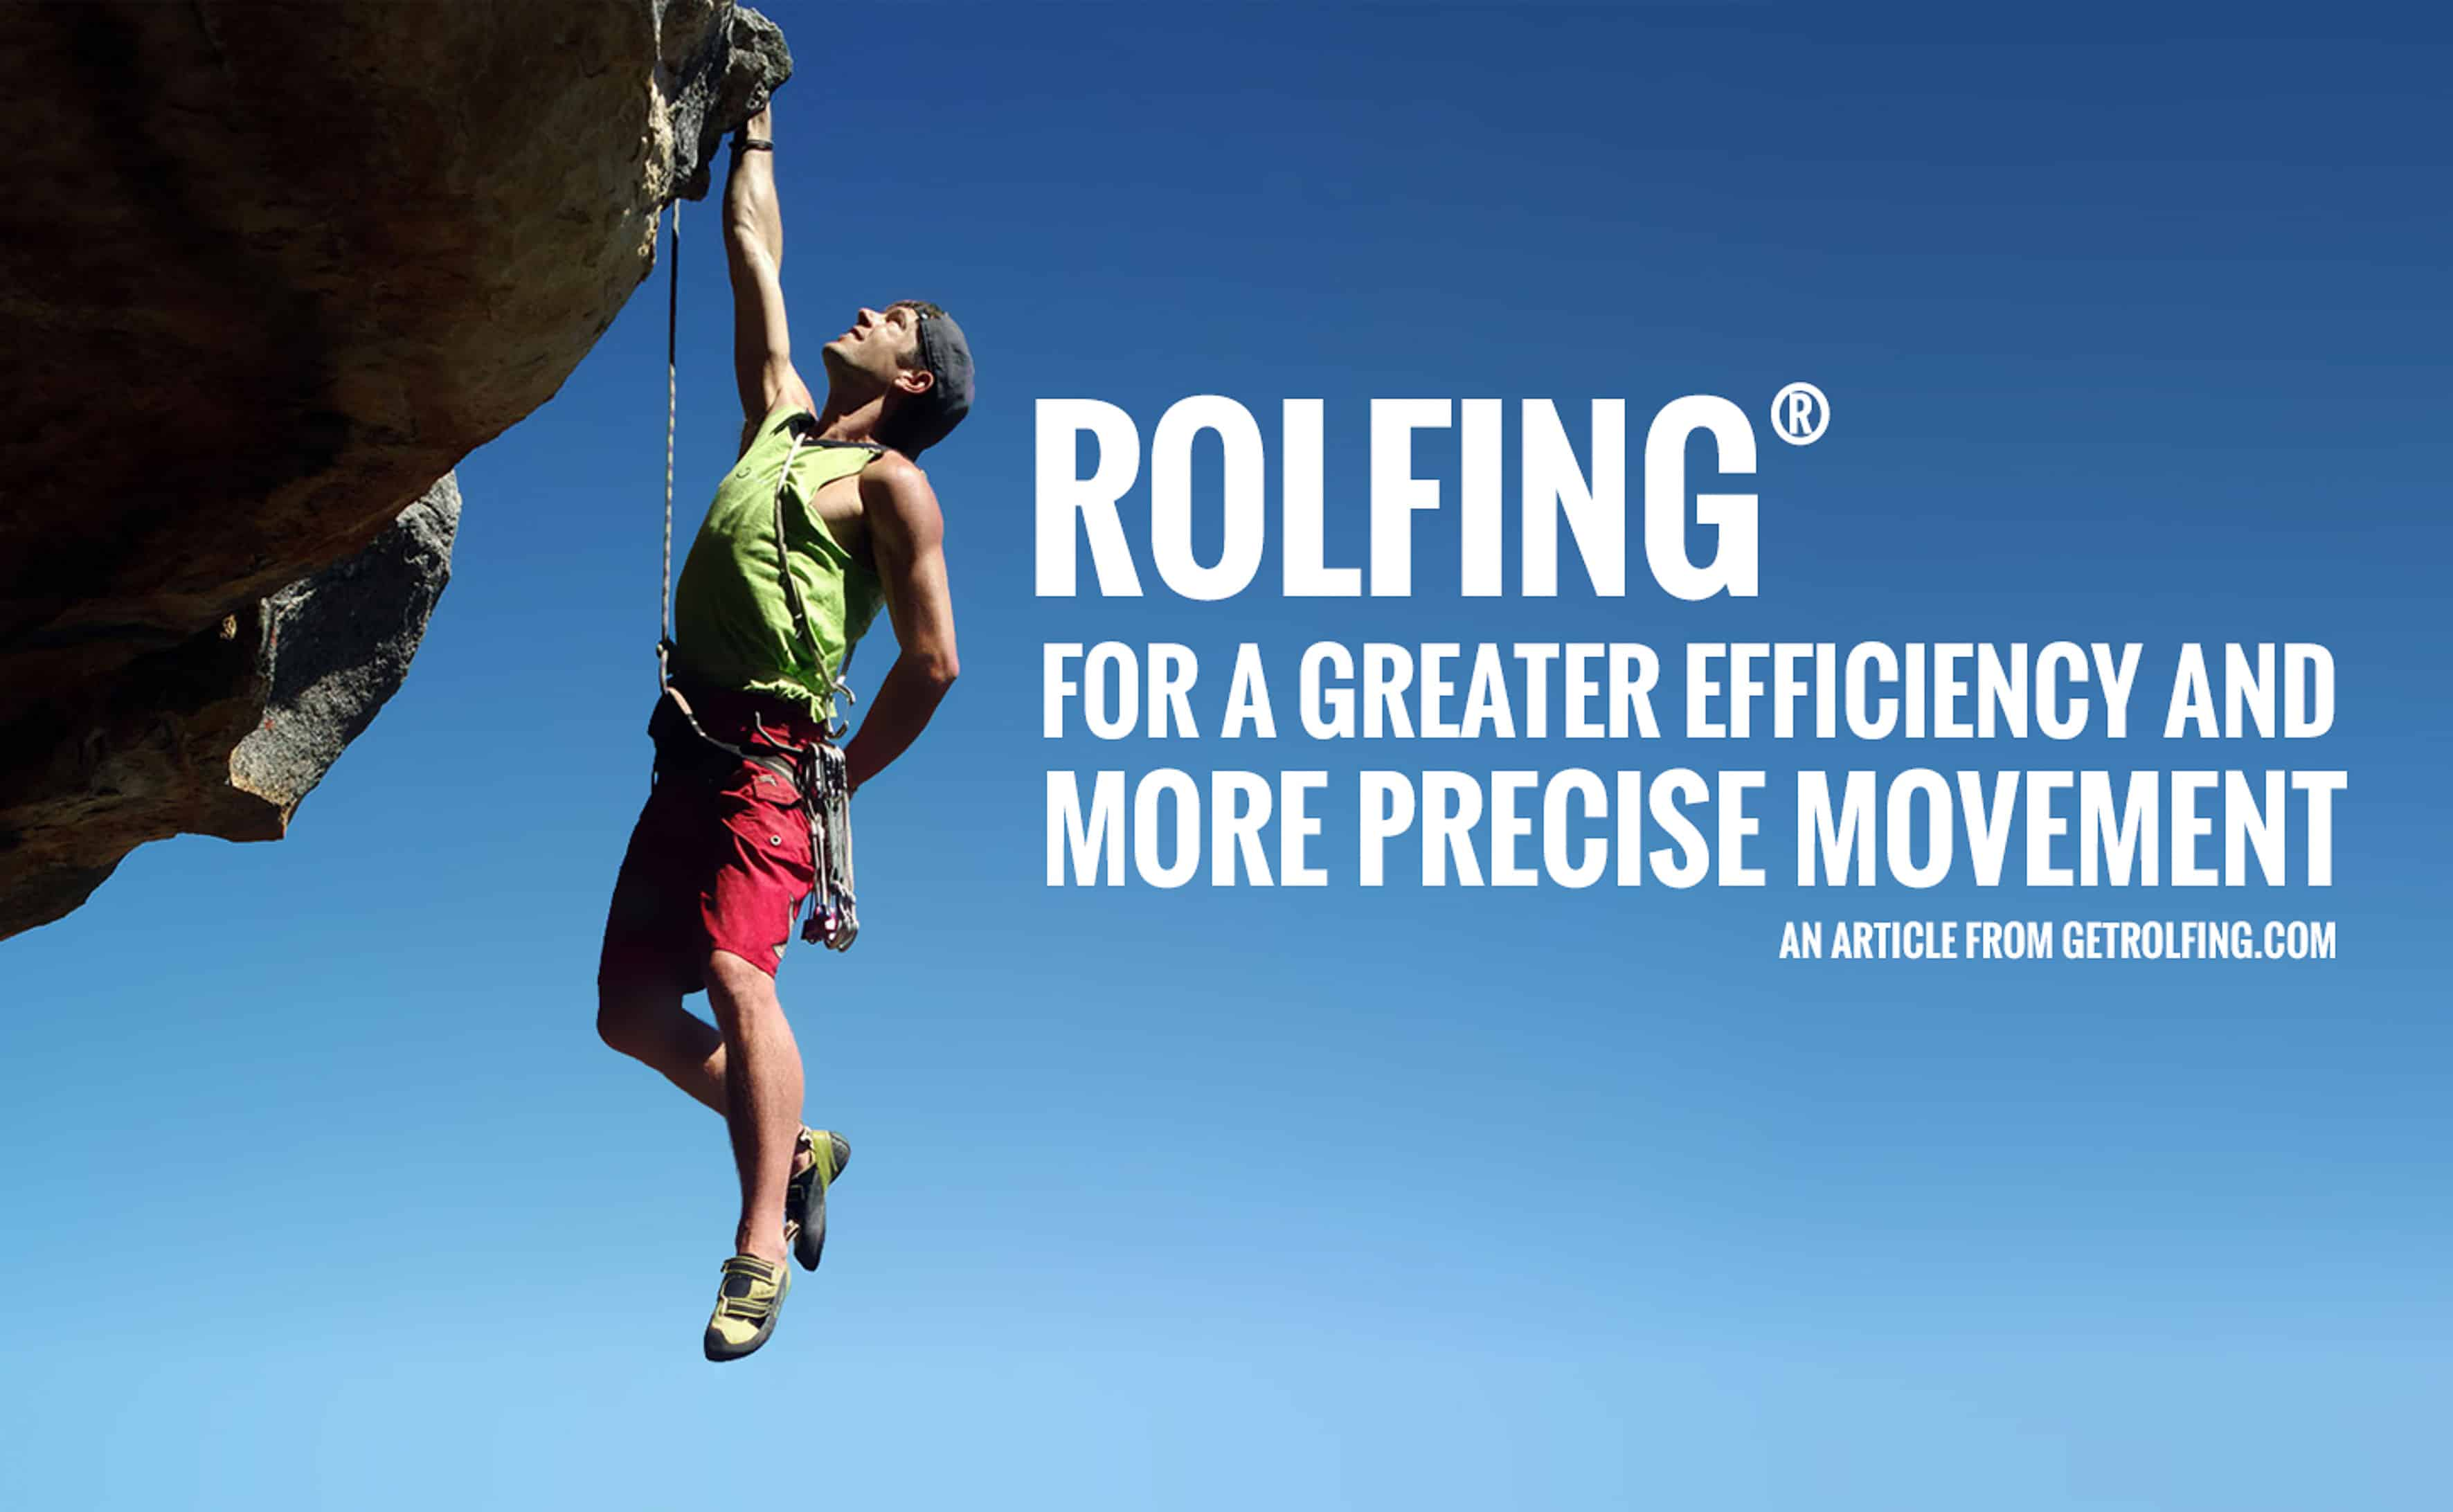 ROLFING FOR A GREATER EFFICIENCY AND MORE PRECISE MOVEMENT